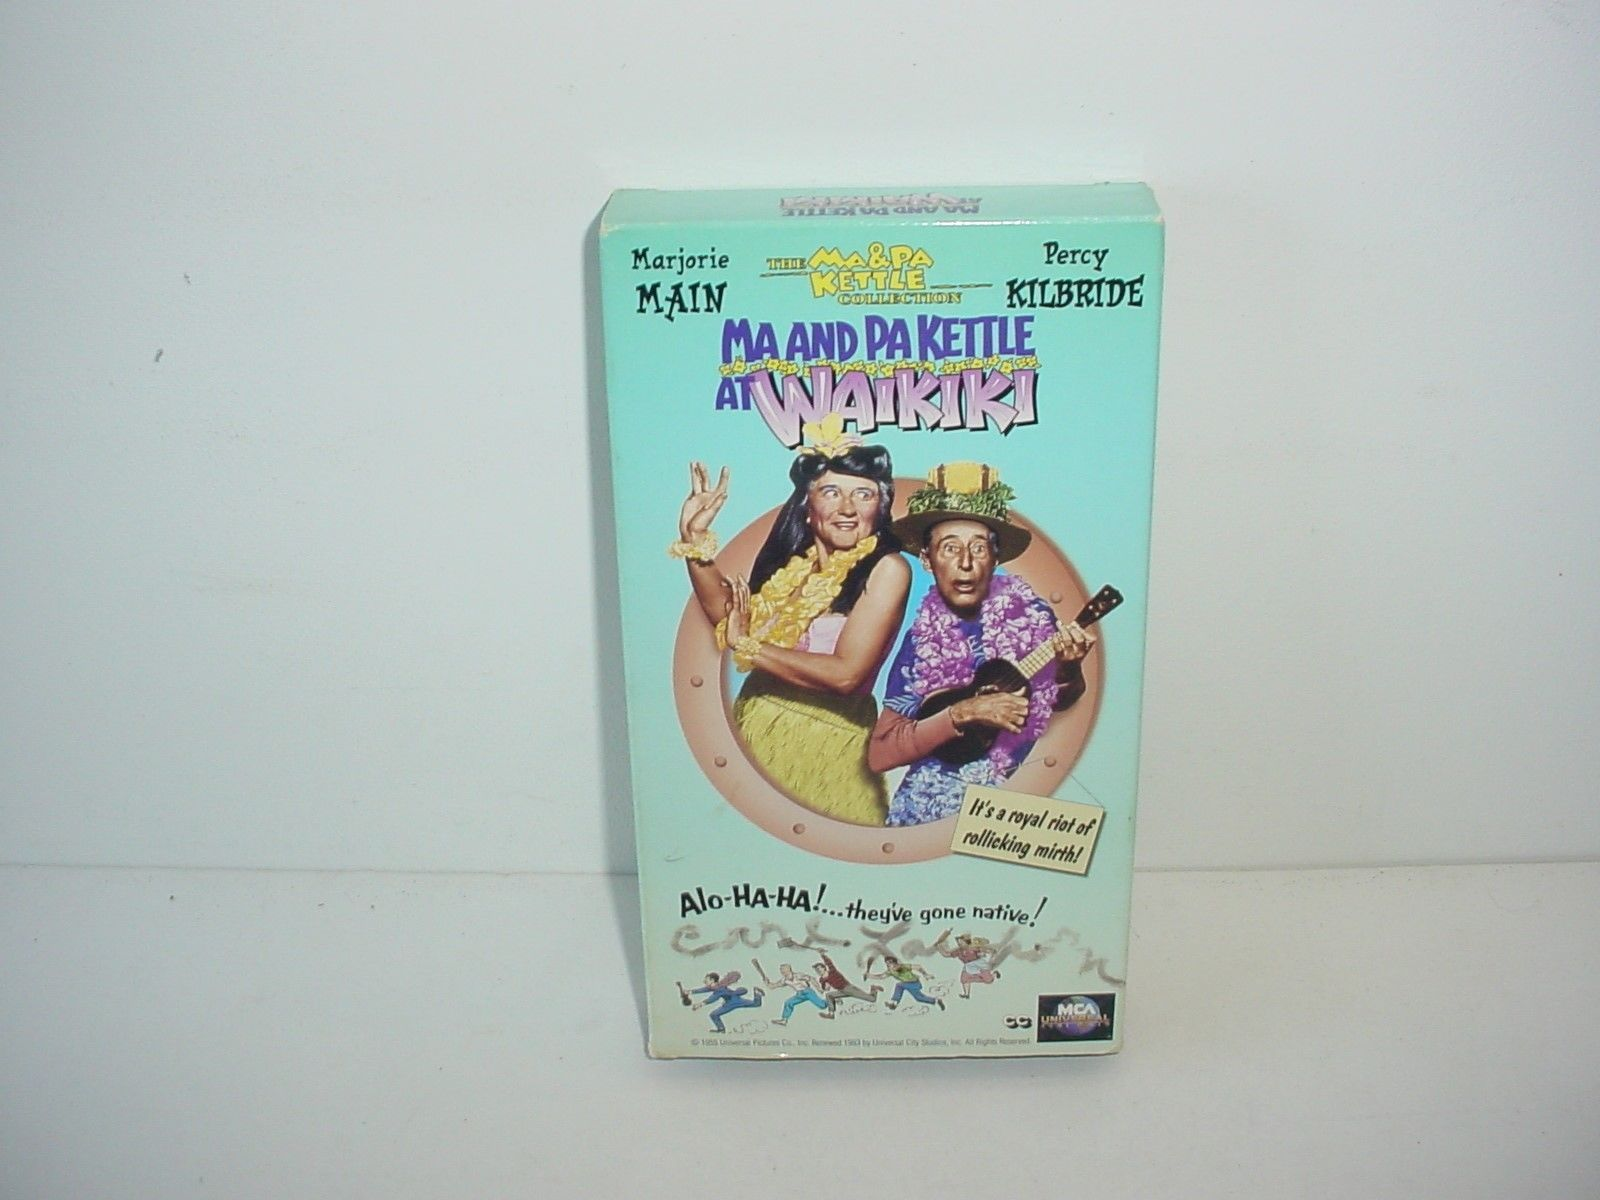 Primary image for Ma and Pa Kettle at Waikiki VHS Video Tape Movie